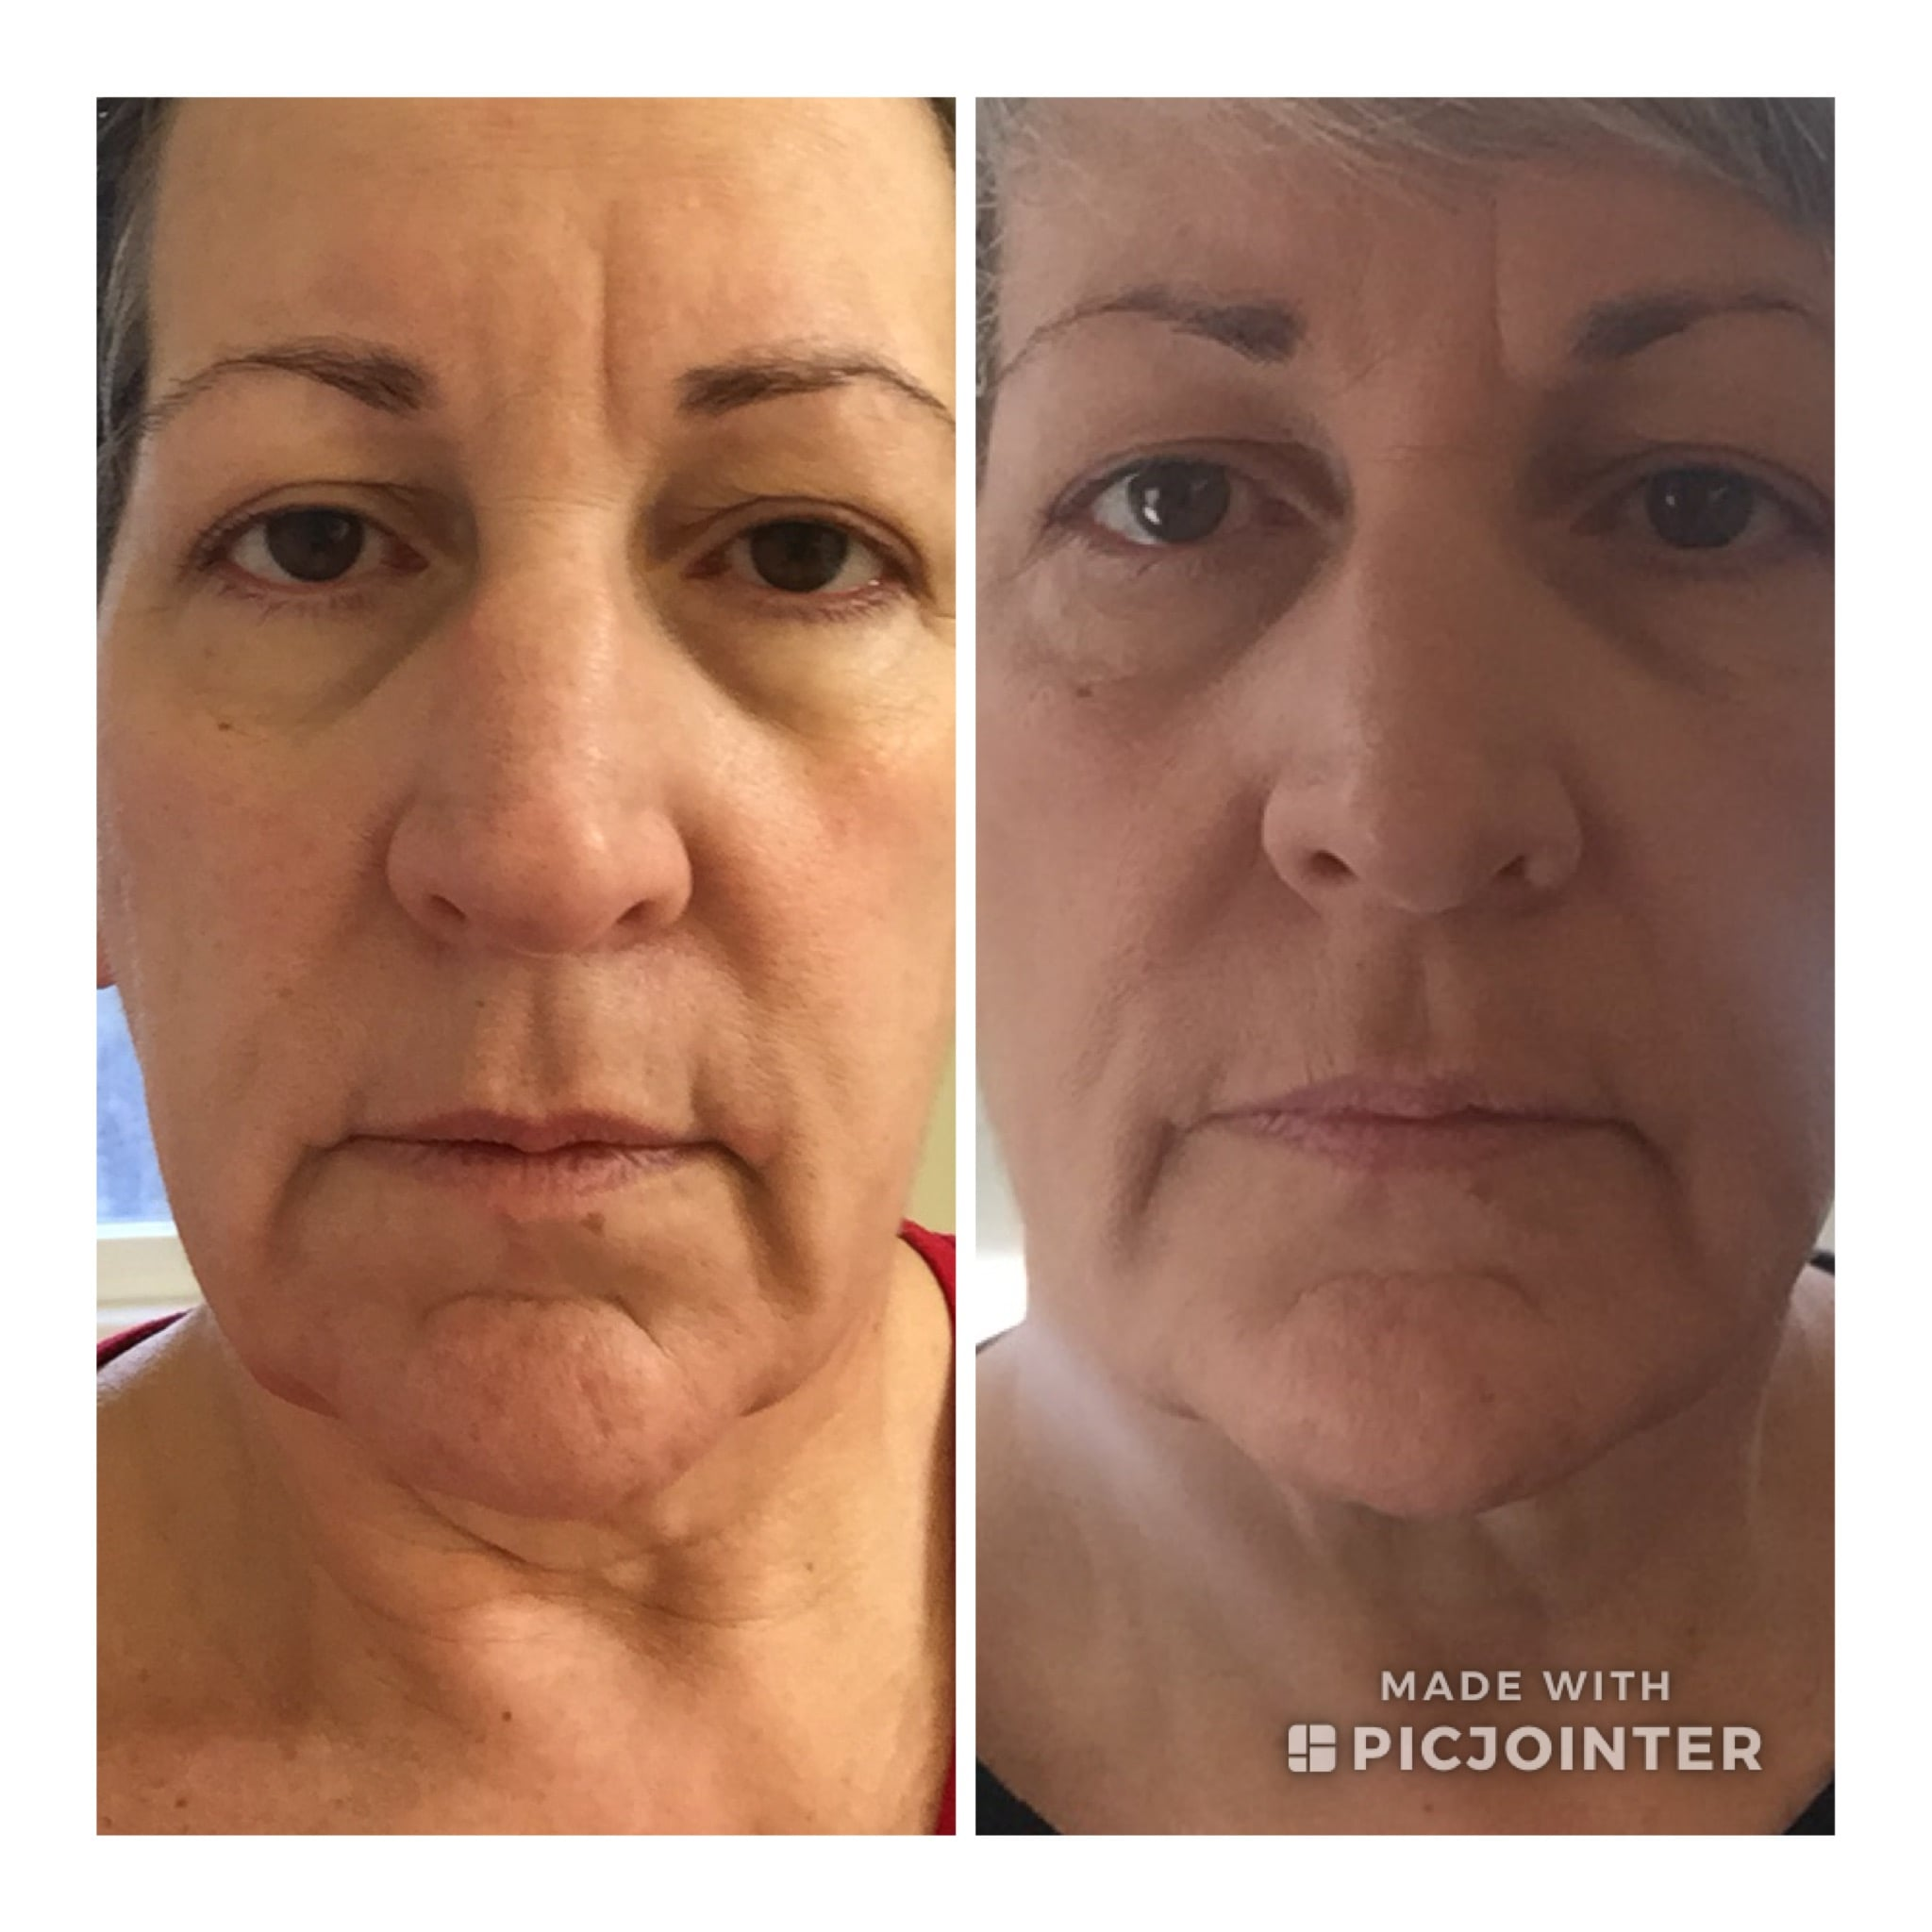 My New MŌDERE Skincare Regimen - Modere Skincare - Modere Before and After - Modere Utah - Clean Beauty - Modere Anti Aging Review - Modere.com - Clean Beauty Review - Modere Product Review - #cleanbeauty #modere #beforeandafter